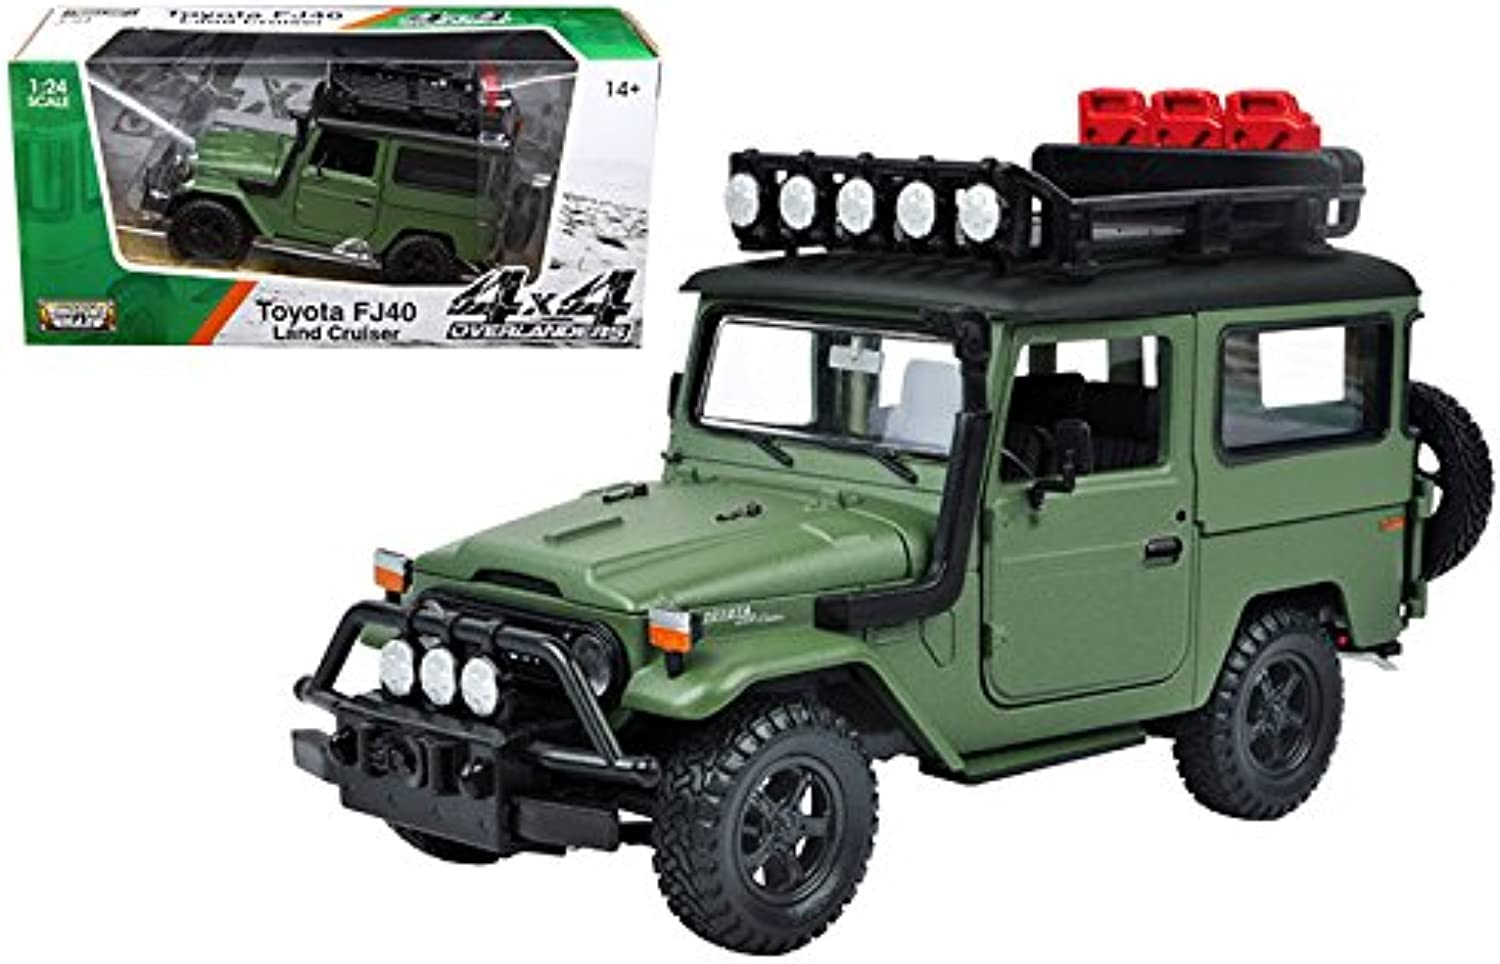 Motor Max 1 24 WINDOW BOX 4X4 Overlanders Toyota FJ40 Land Cruiser MJ Exclusive Diecast Vehicle, Green